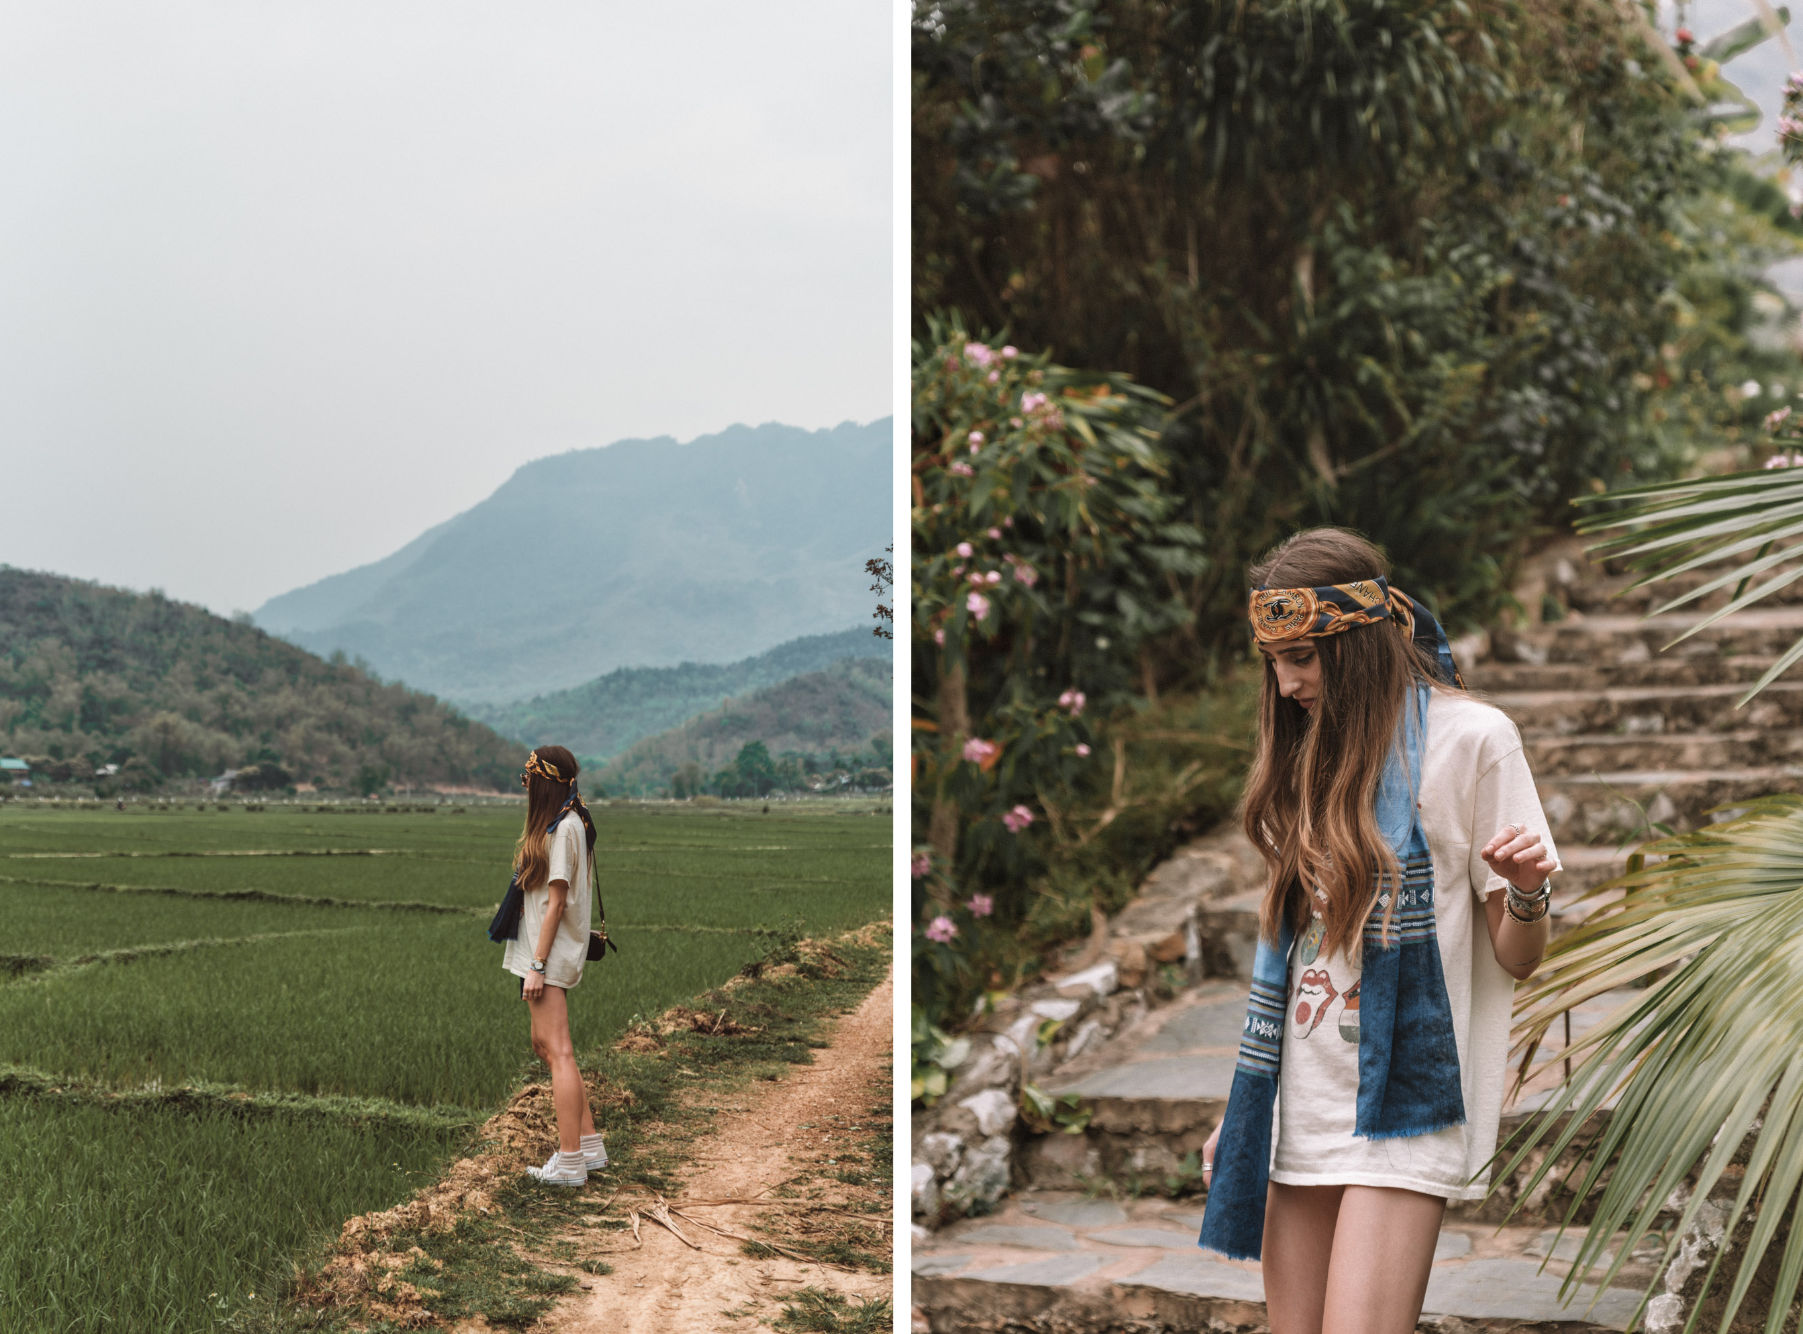 About Roadtrips & Rice Fields | Vietnam with Kiehl's | Lisa Fiege